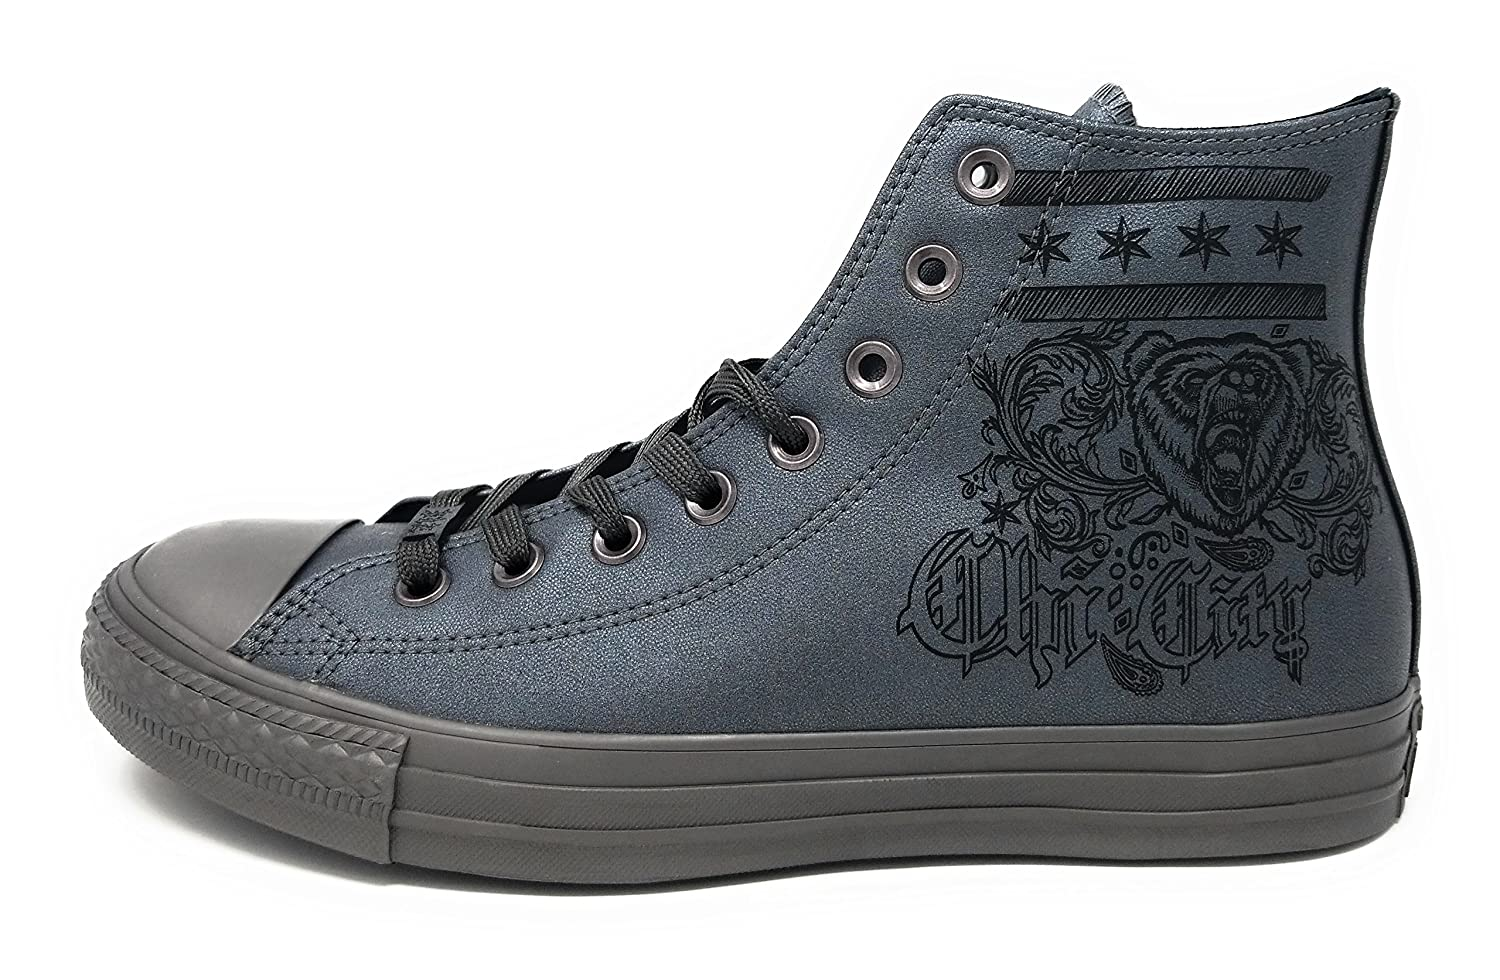 Converse Unisex Chuck Taylor in All-Star High-Top Casual Sneakers in Taylor Classic Style and Color and Durable Canvas Uppers B07D5HWNKR 8 D(M) US|Gunmetal/Gunmetal/Black 62a7ee